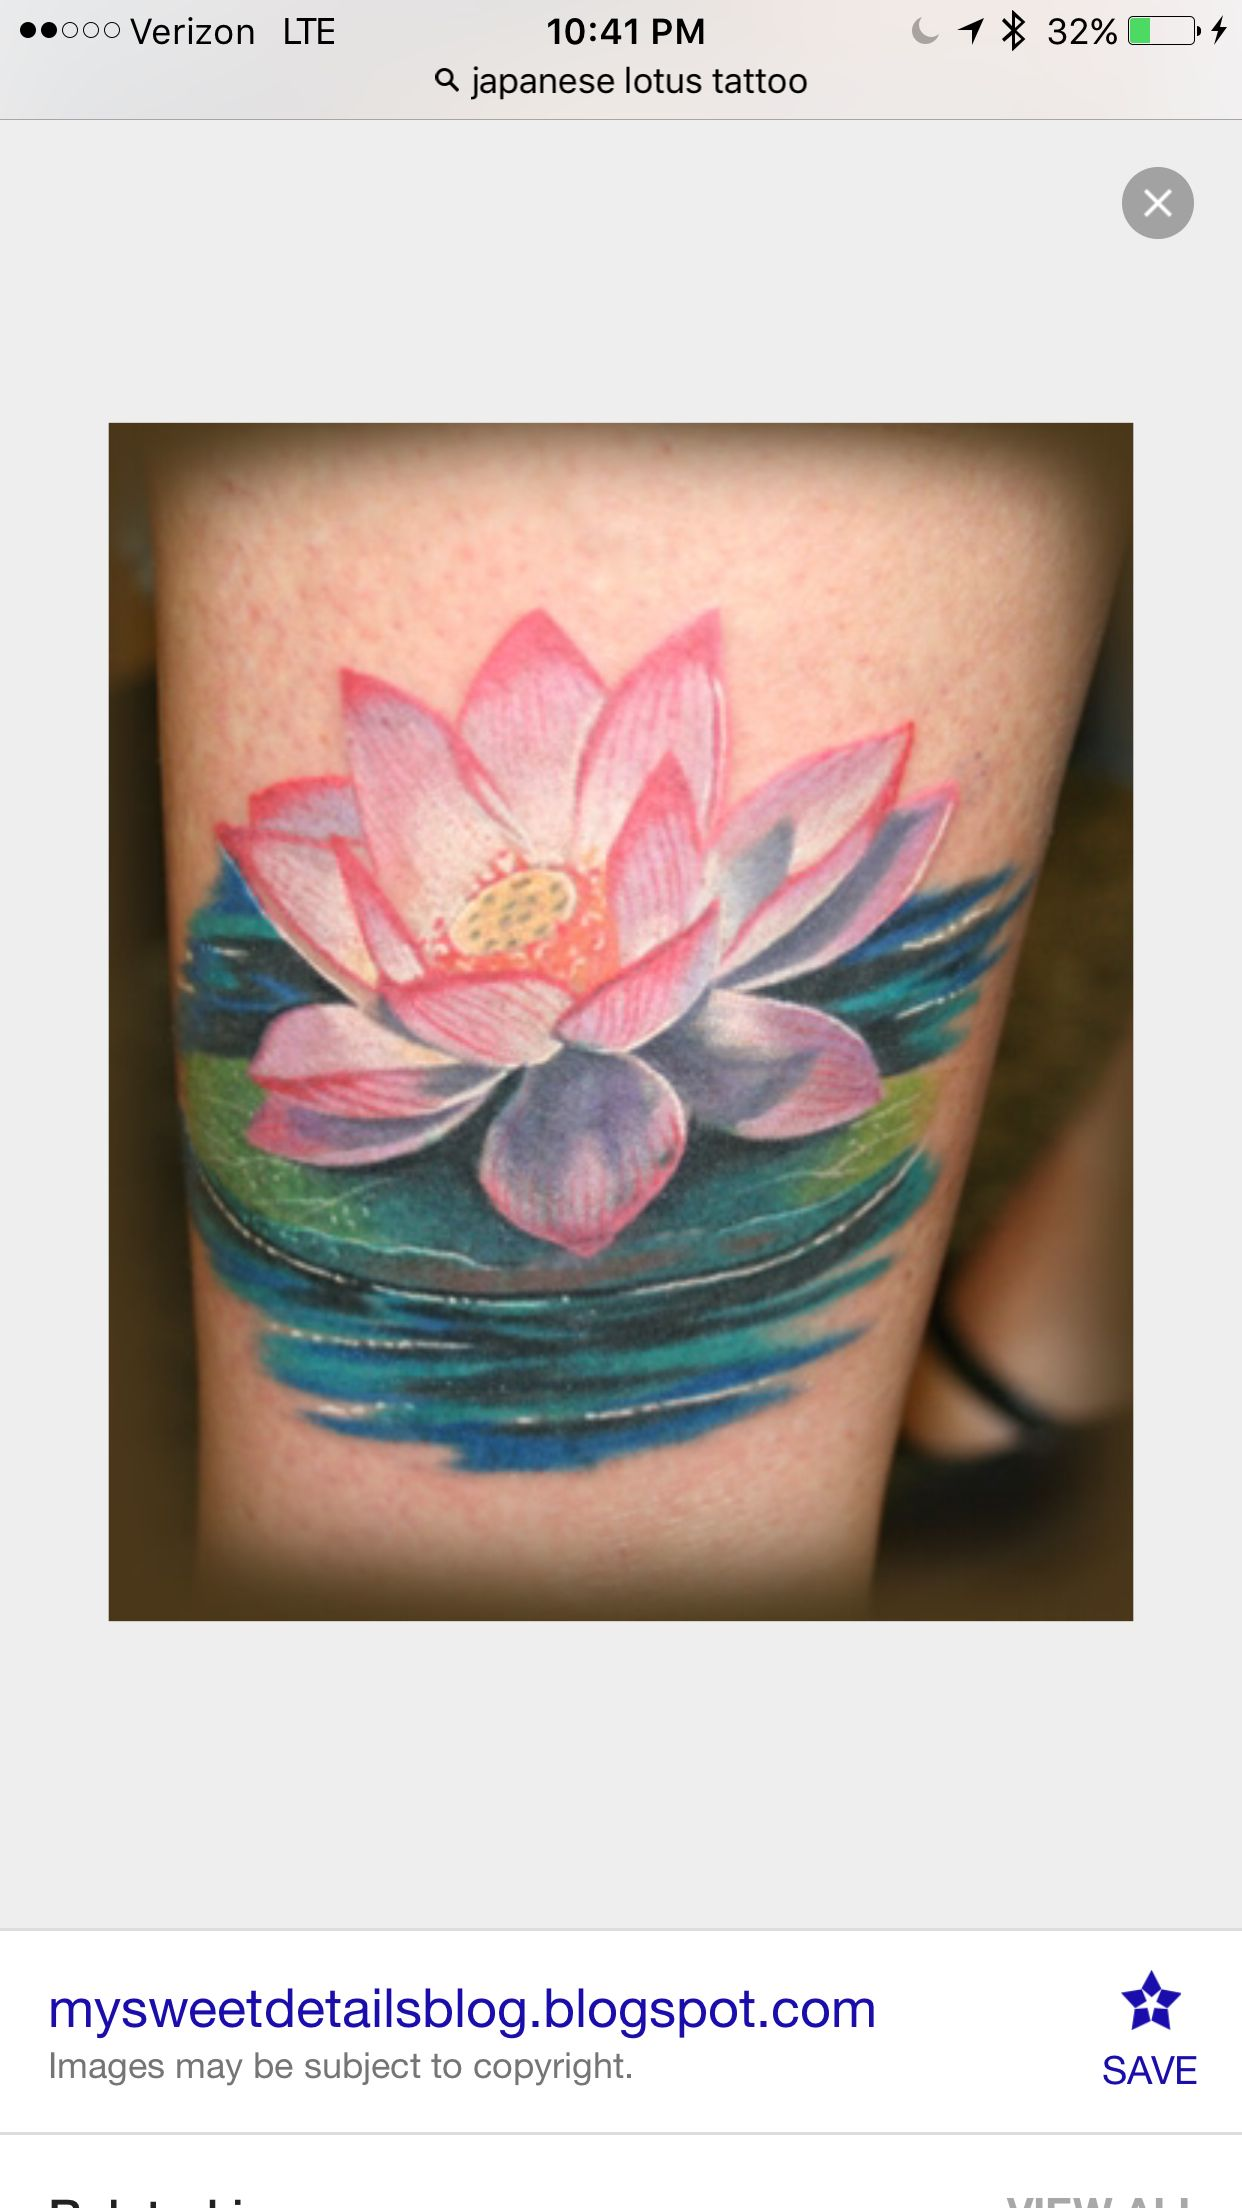 Lotus tattoo tattoos i want pinterest lotus tattoo tattoo and among the many lotus tattoo designs there are the beautiful white lotus flower tattoo designs that particularly hold your attention with their myriad izmirmasajfo Image collections